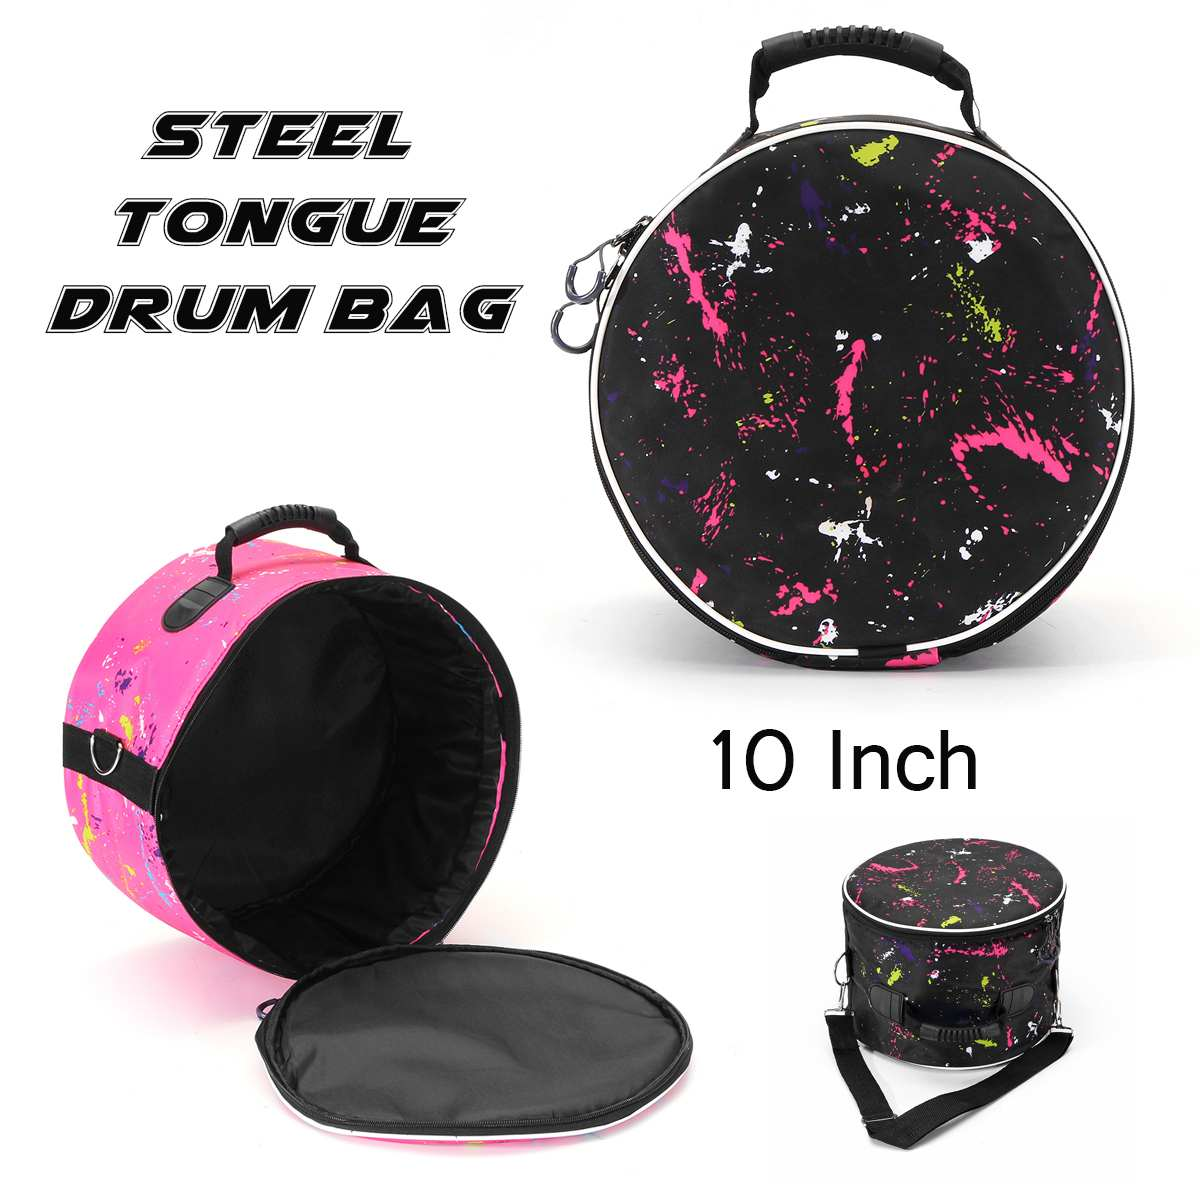 10 inch protable steel tongue drum bag colorful round carrying drum bag oxford fabric steel. Black Bedroom Furniture Sets. Home Design Ideas